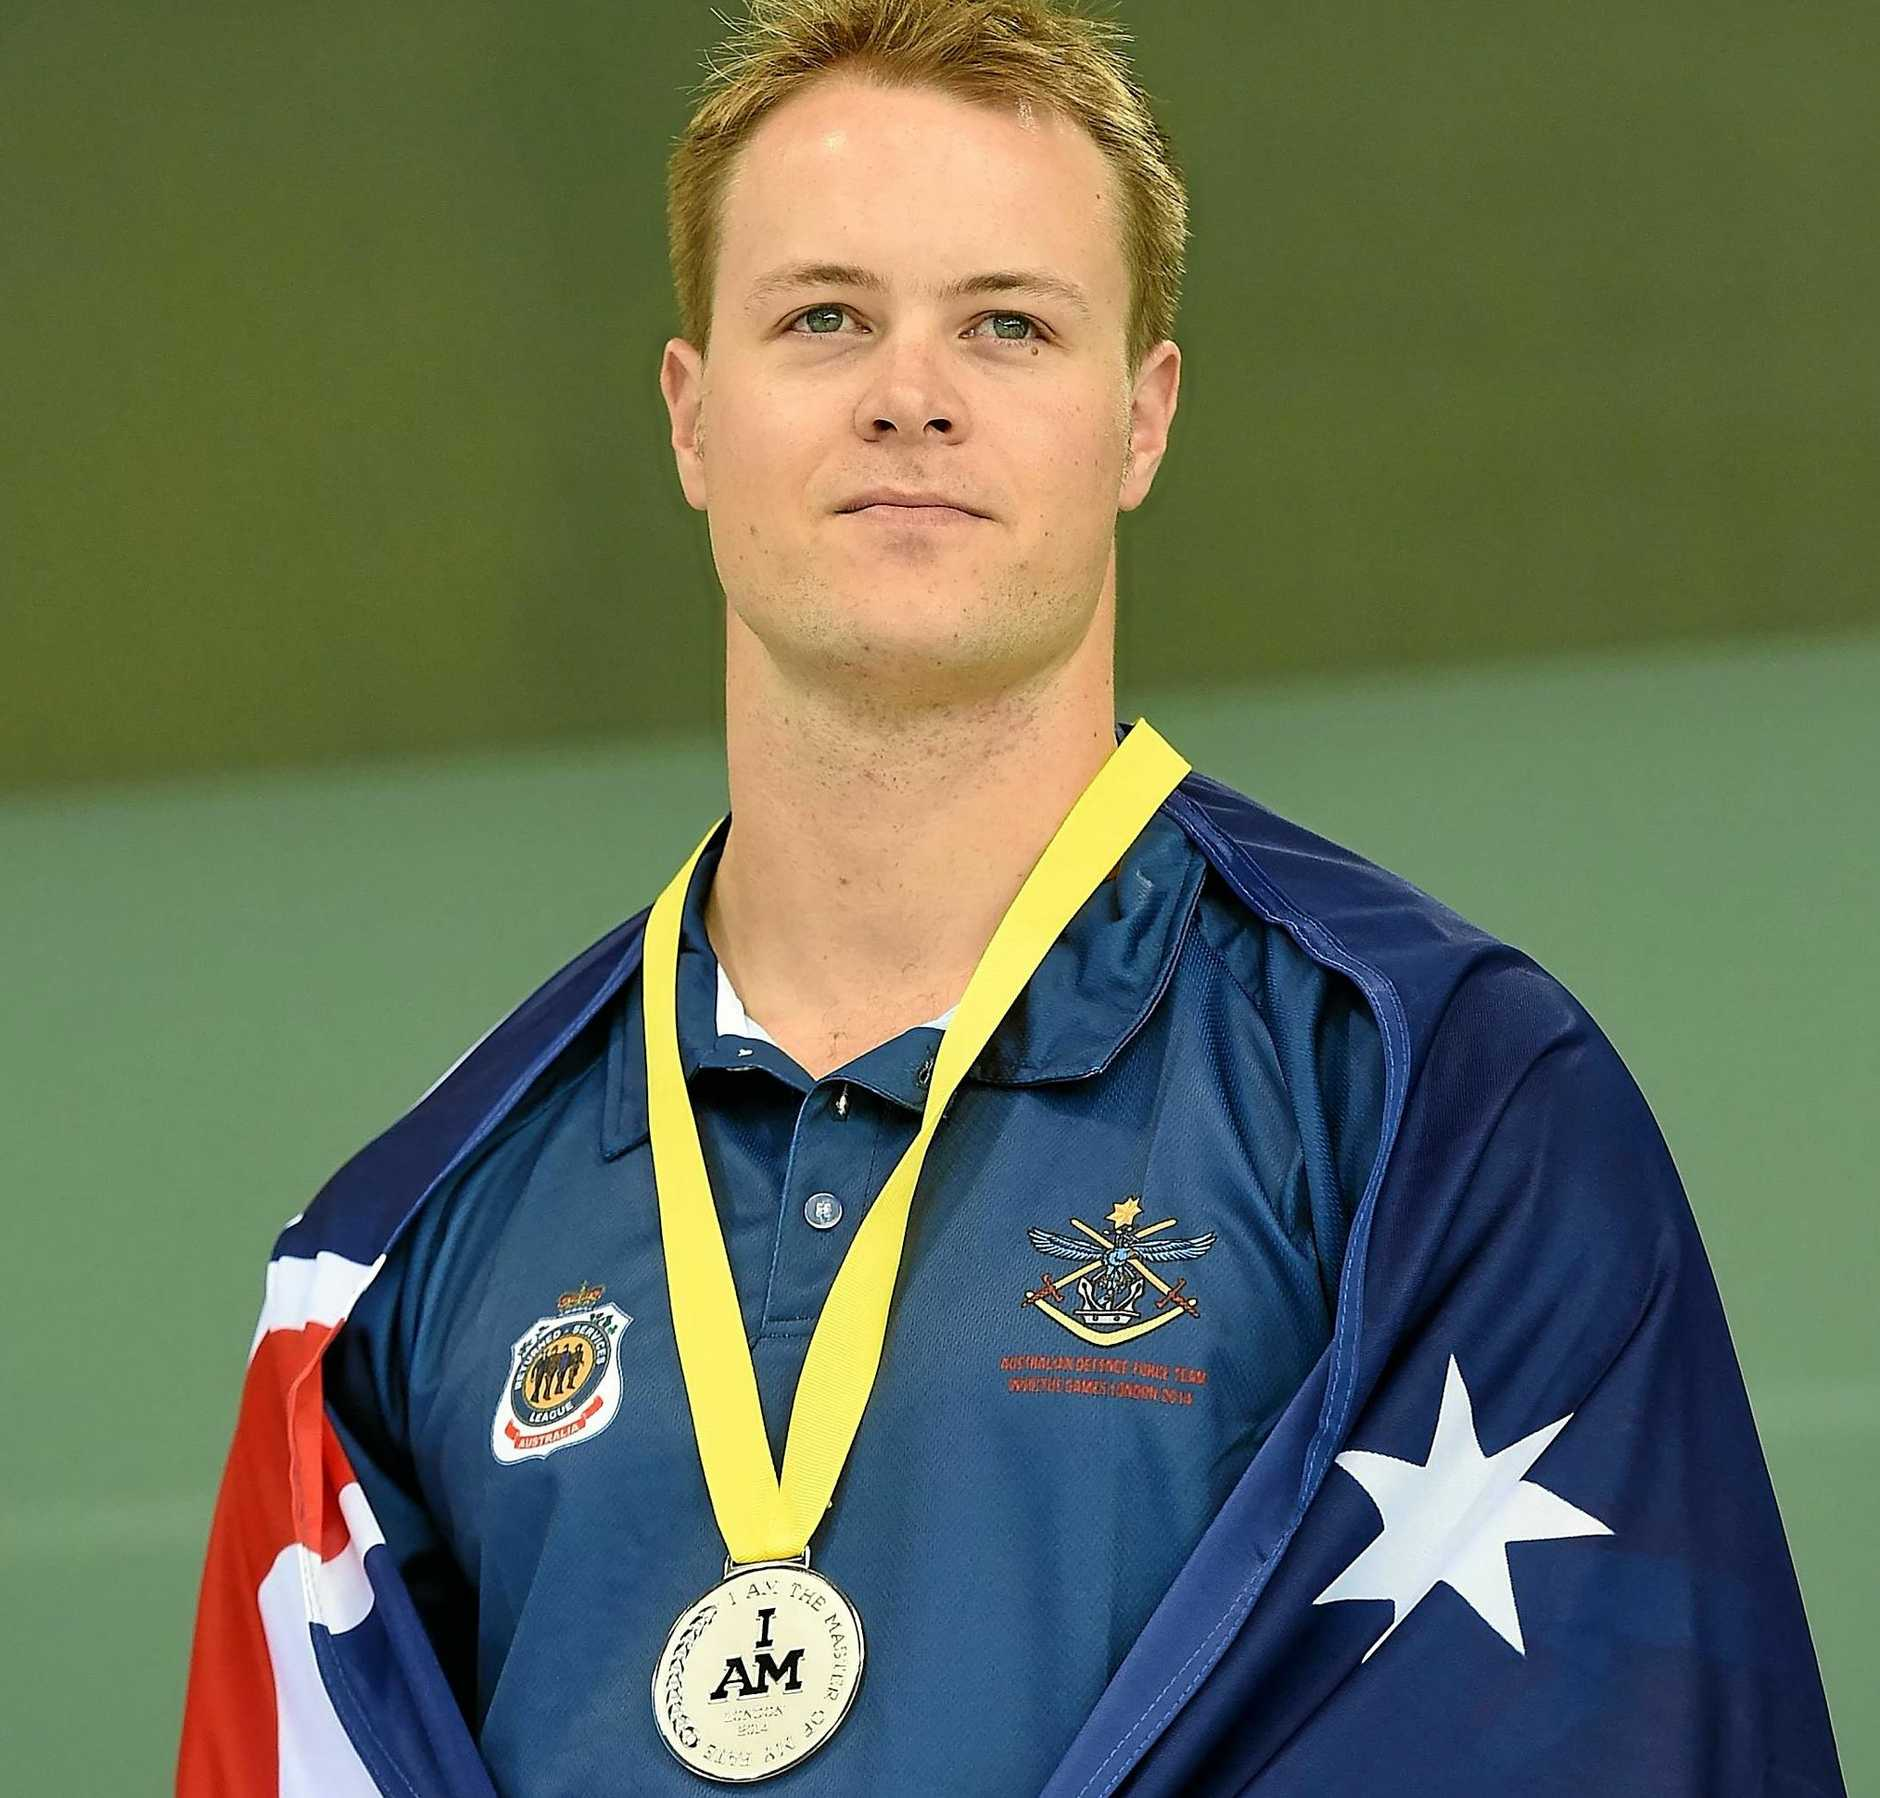 Curtis McGrath won a silver medal for swimming at the 2014 Invictus Games for injured servicemen and women.